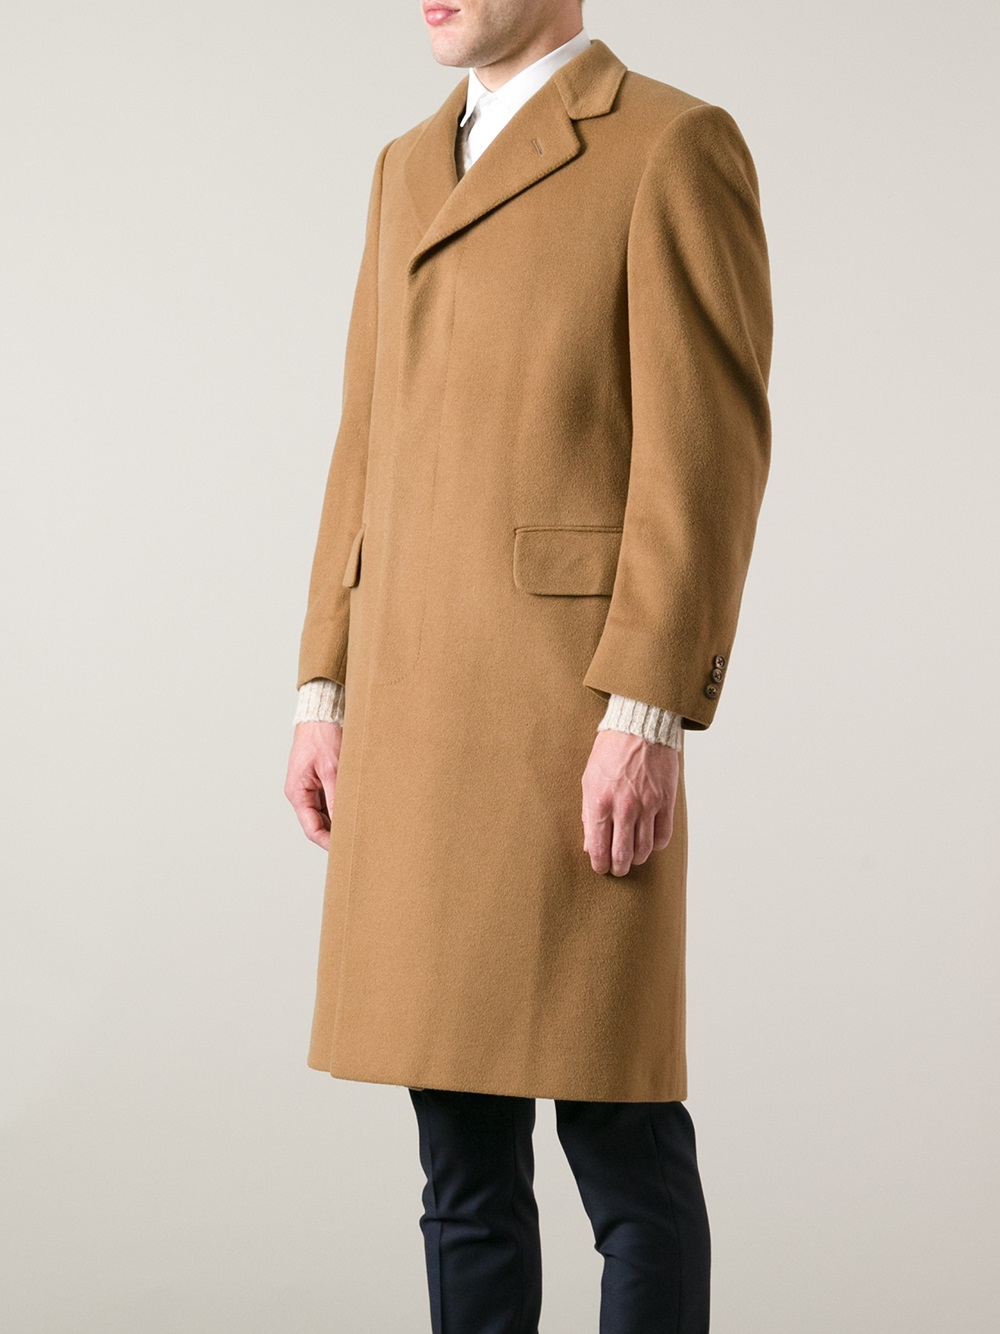 Aquascutum Cashmere and Wool Coat in Brown for Men | Lyst